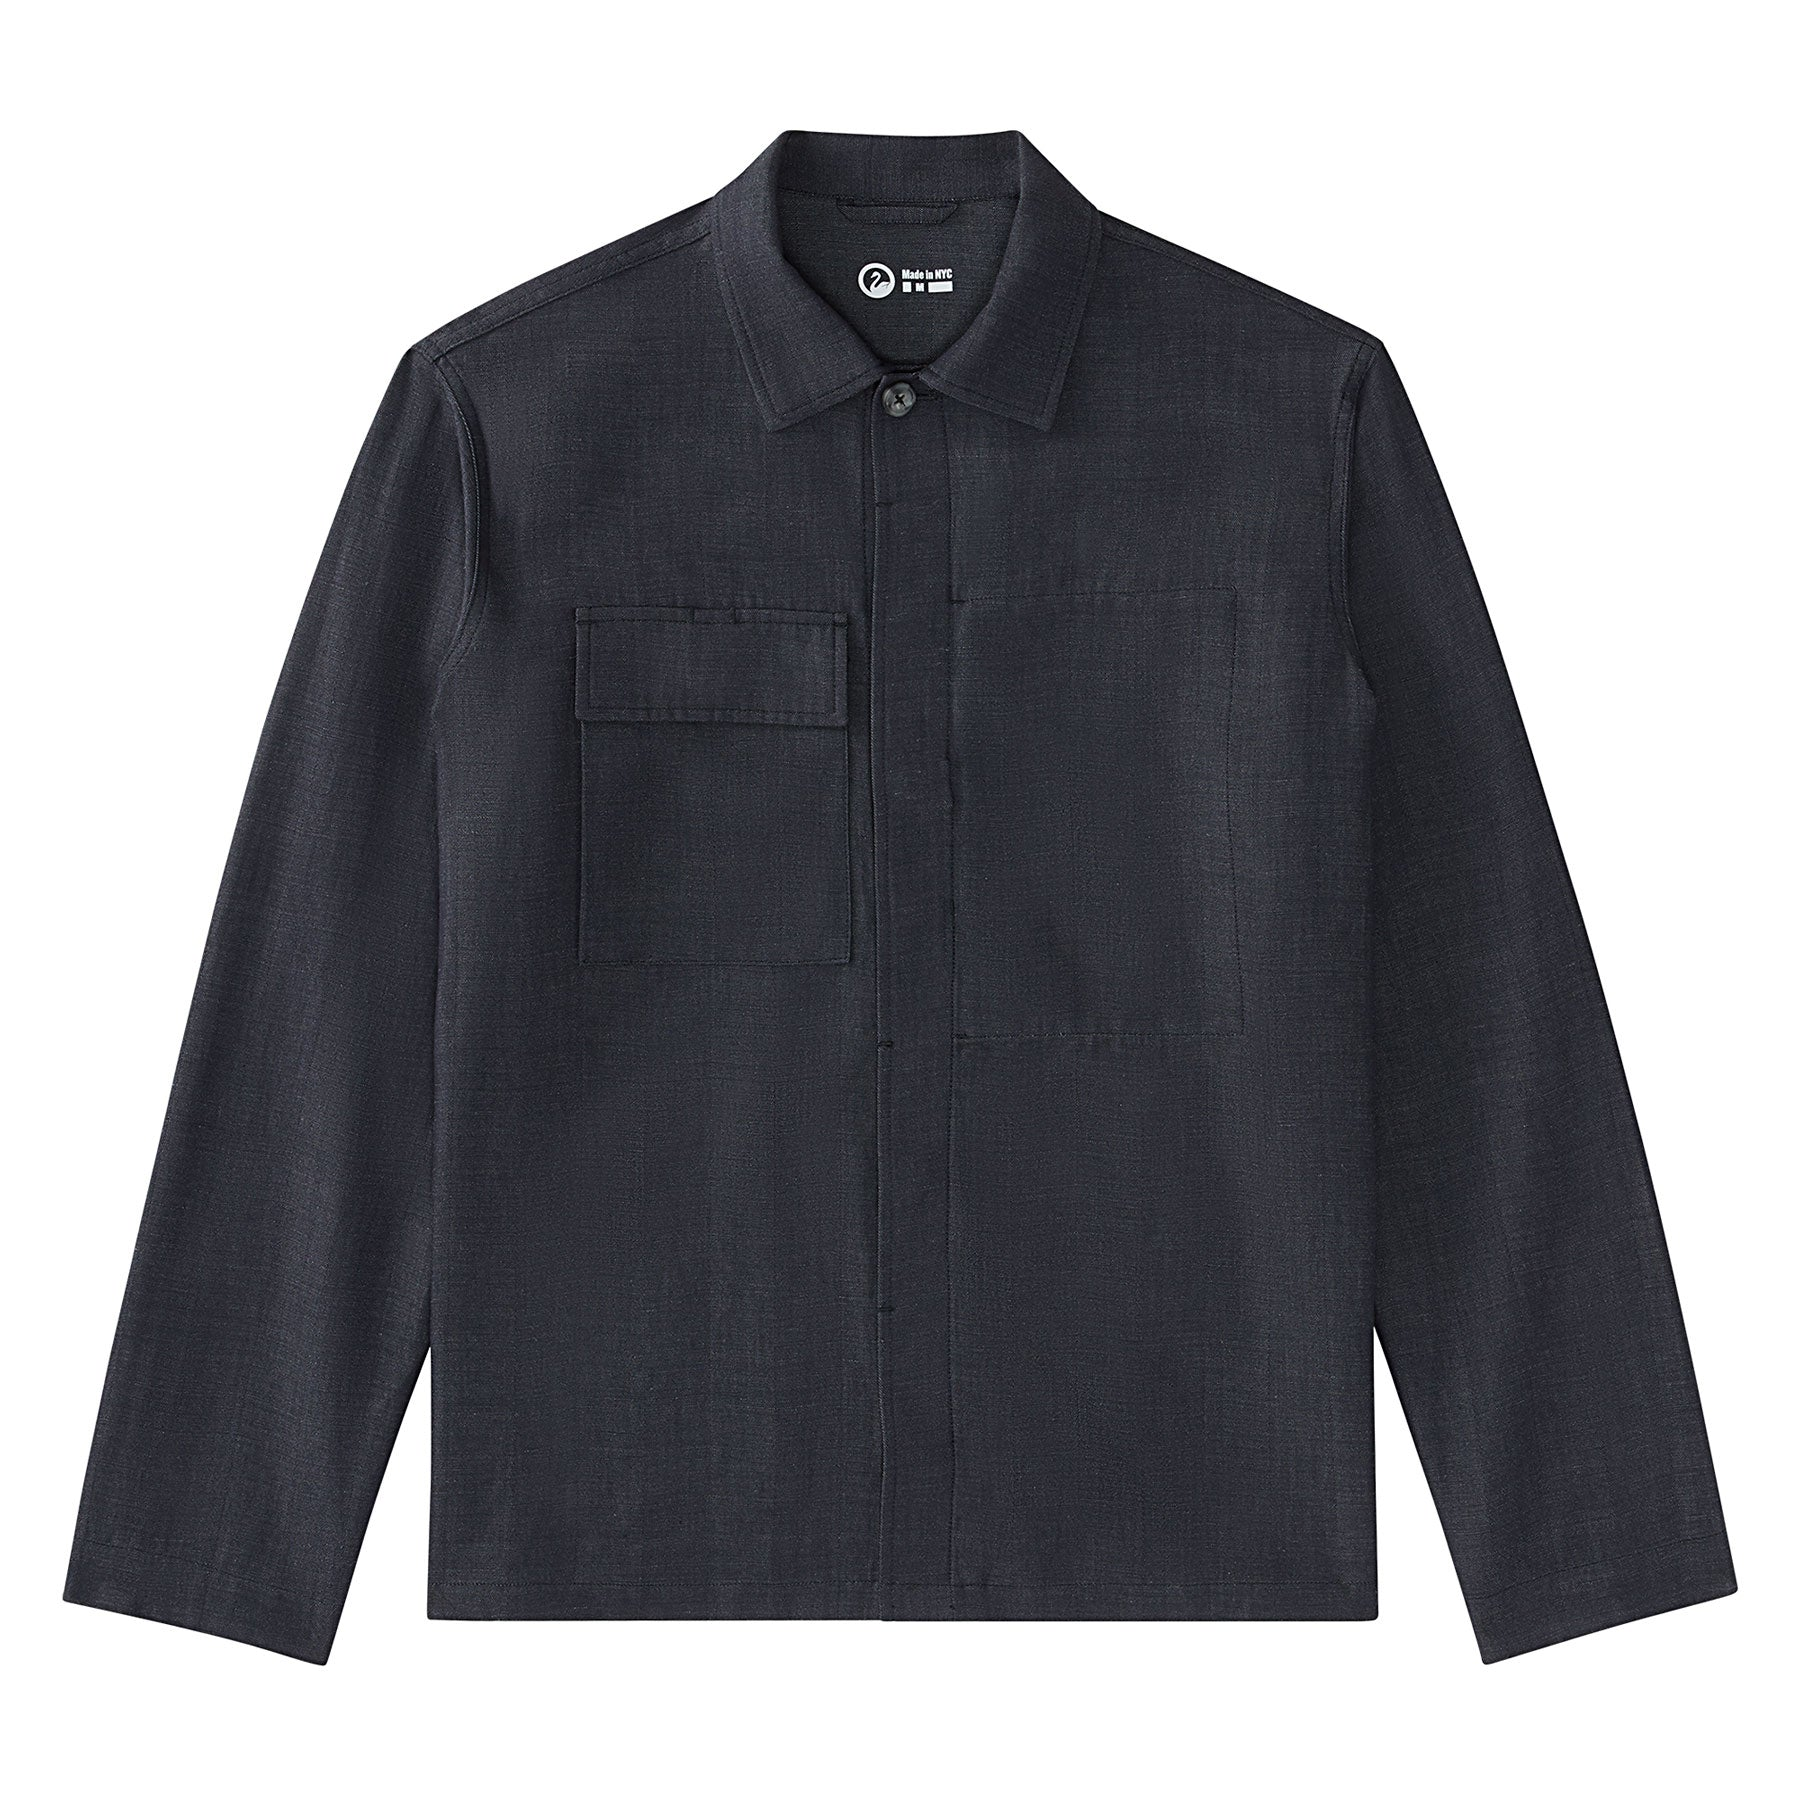 Full flat image of the Experiment 259 - Woollinen Hardshirt in Chambray Gray